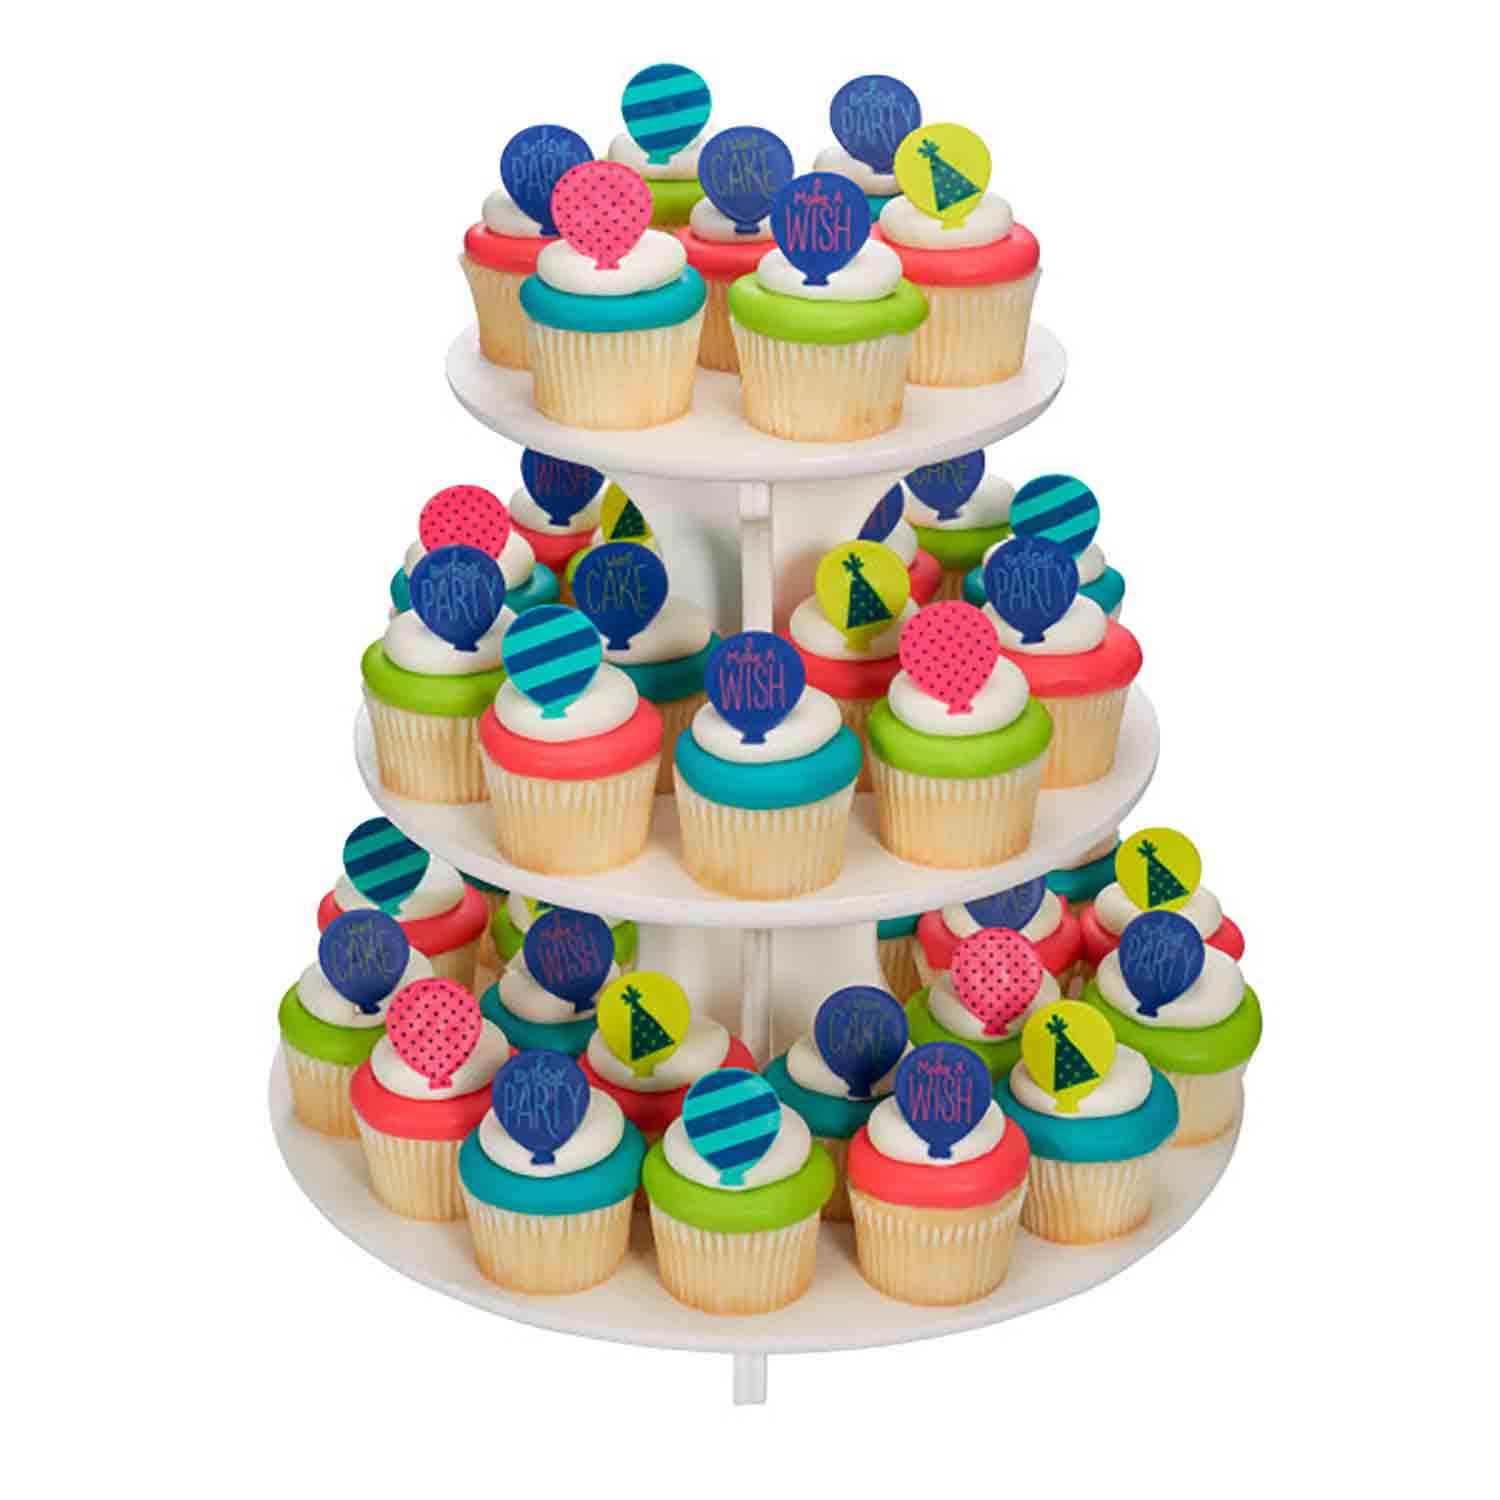 Cupcake Stand -  Single Use 3-Tier Treat Stand